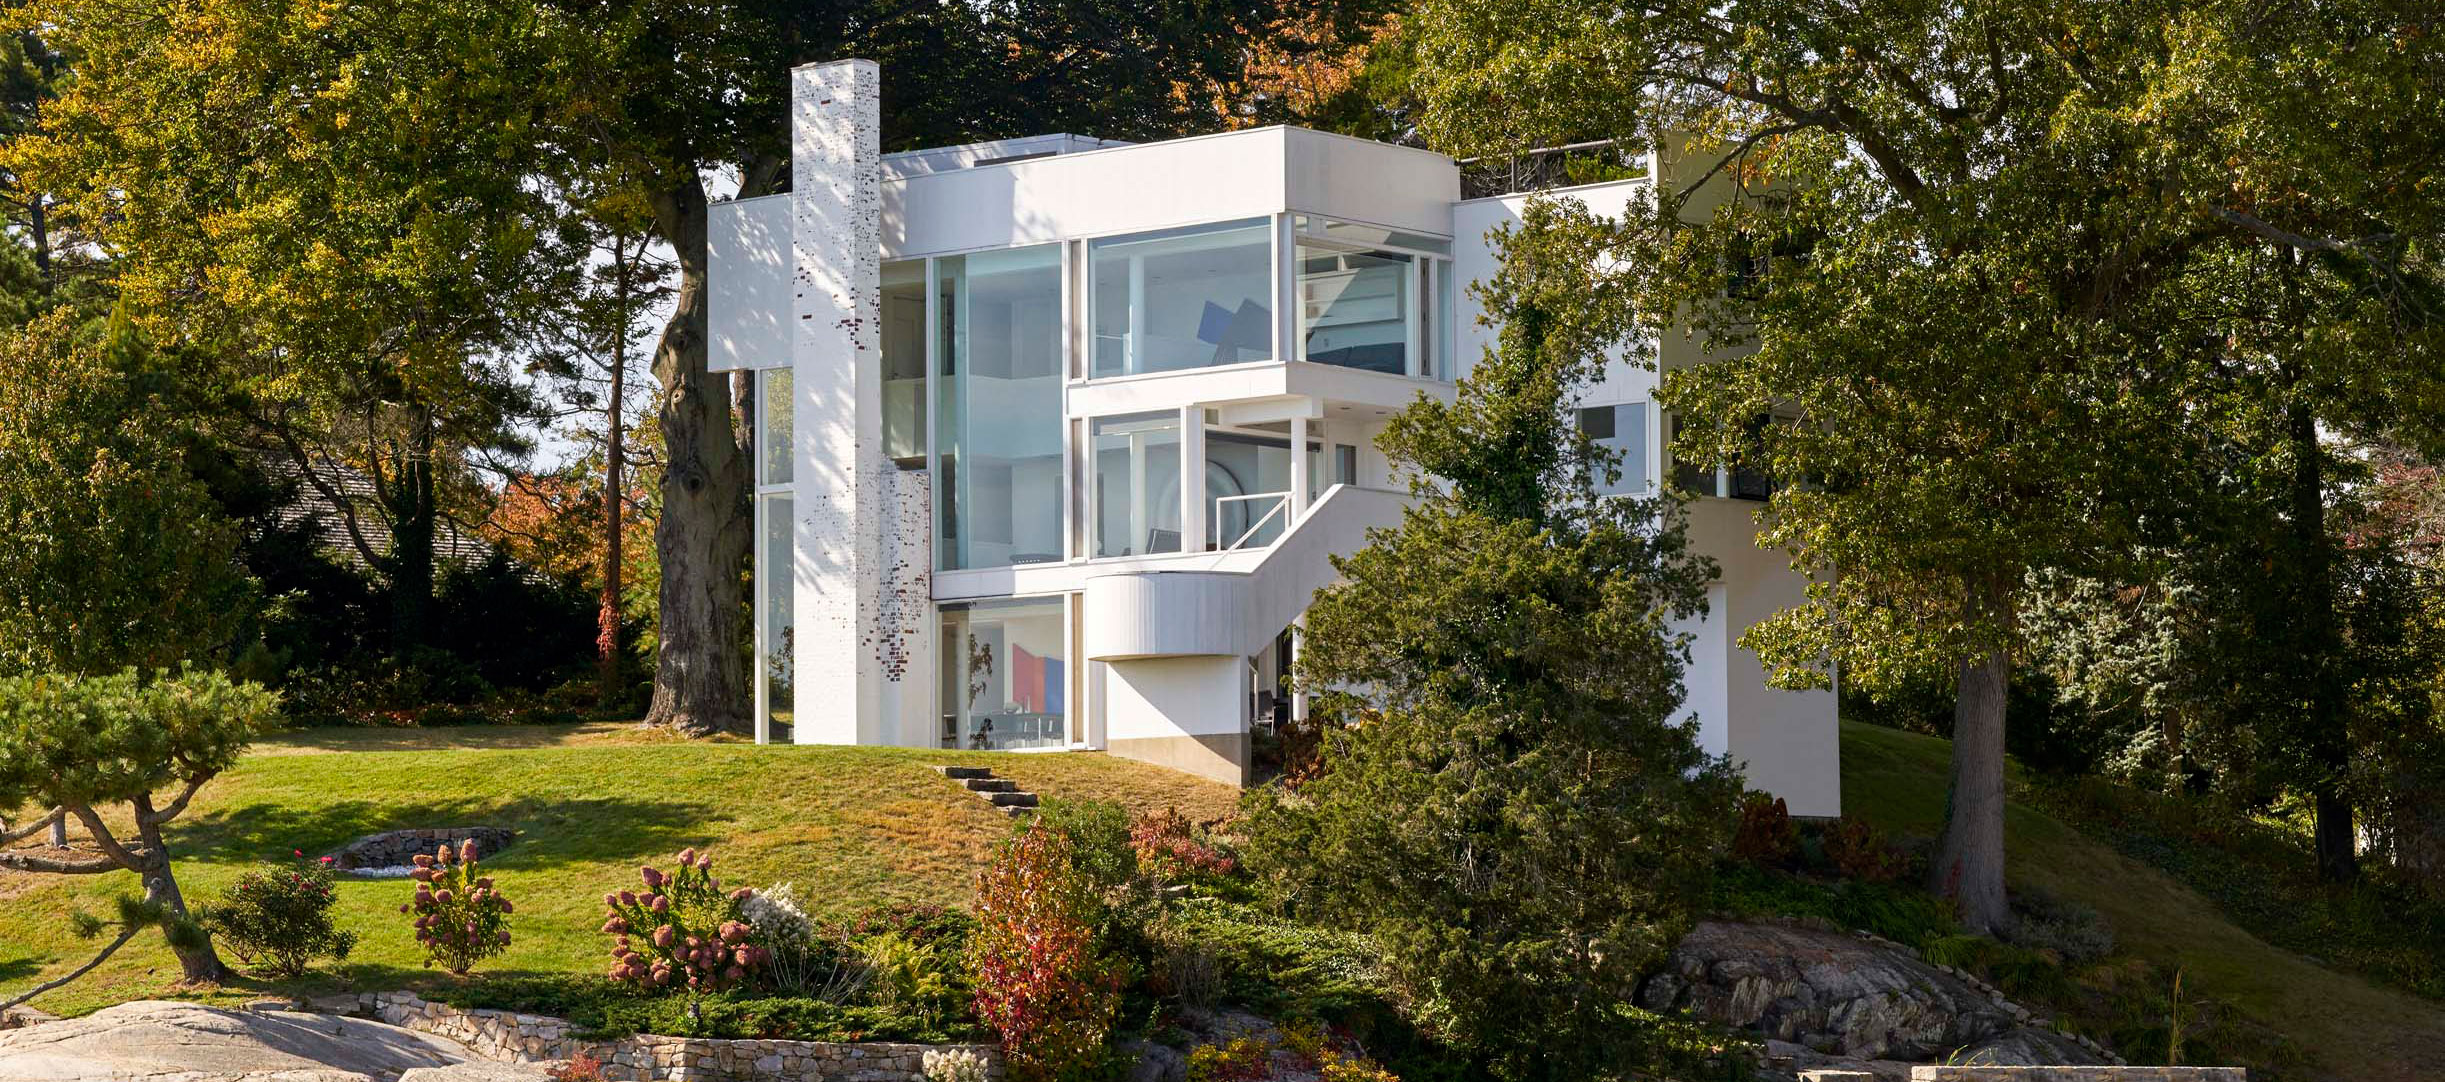 The Smith House by Richard Meier. Photograph © Mike Schwartz. Image courtesy of Richard Meier & Partners Architects